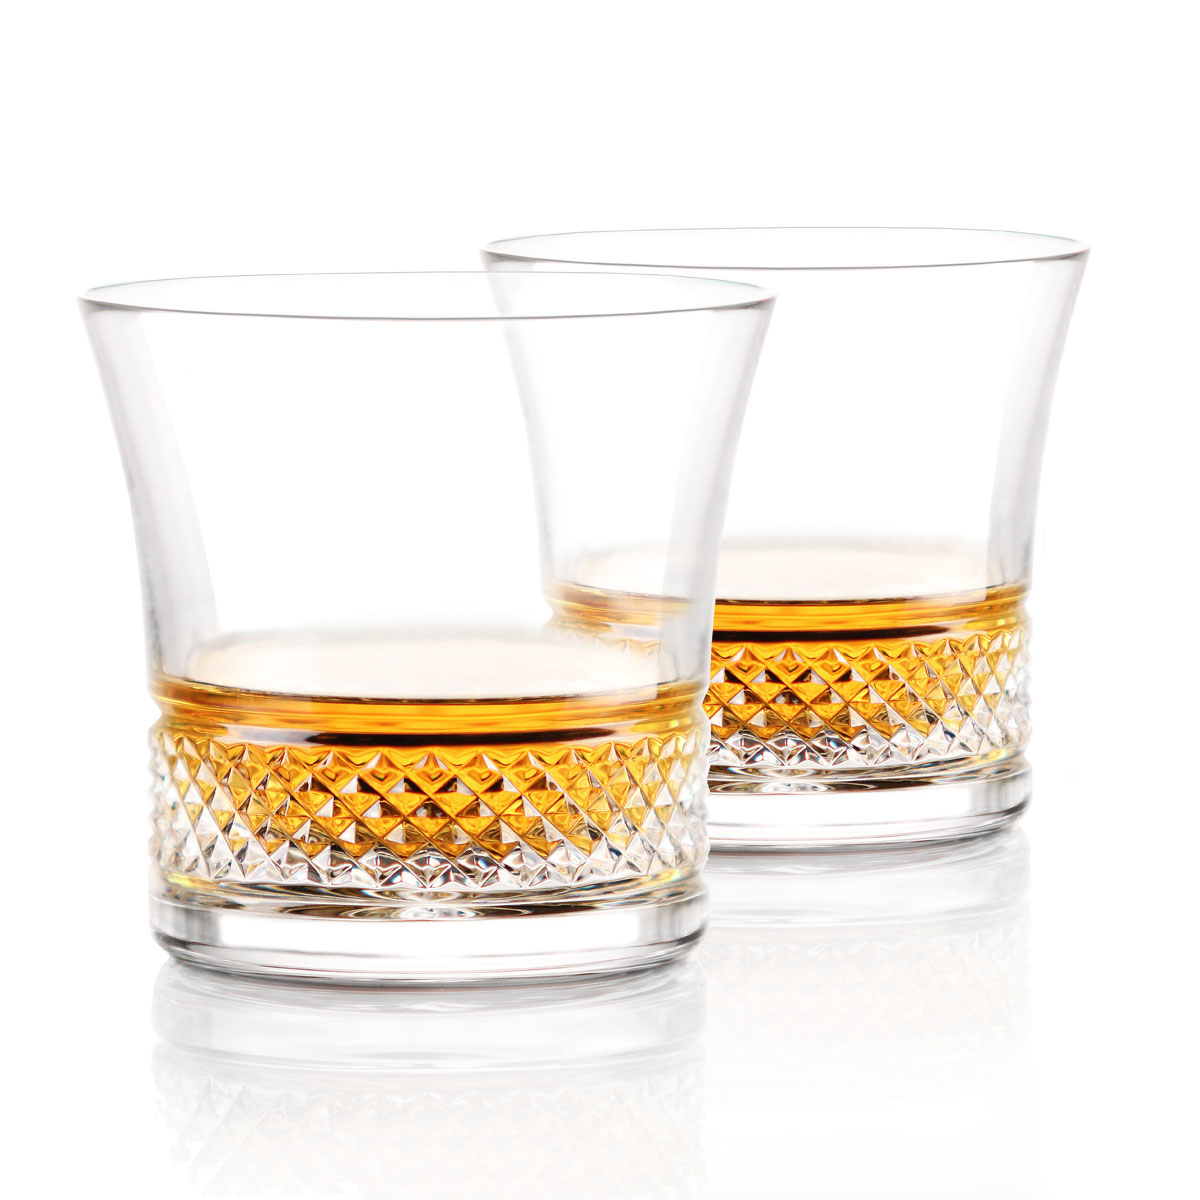 Cashs Ireland, Cooper Regal Scotch Whiskey 3OF Glass, 1+1 Free